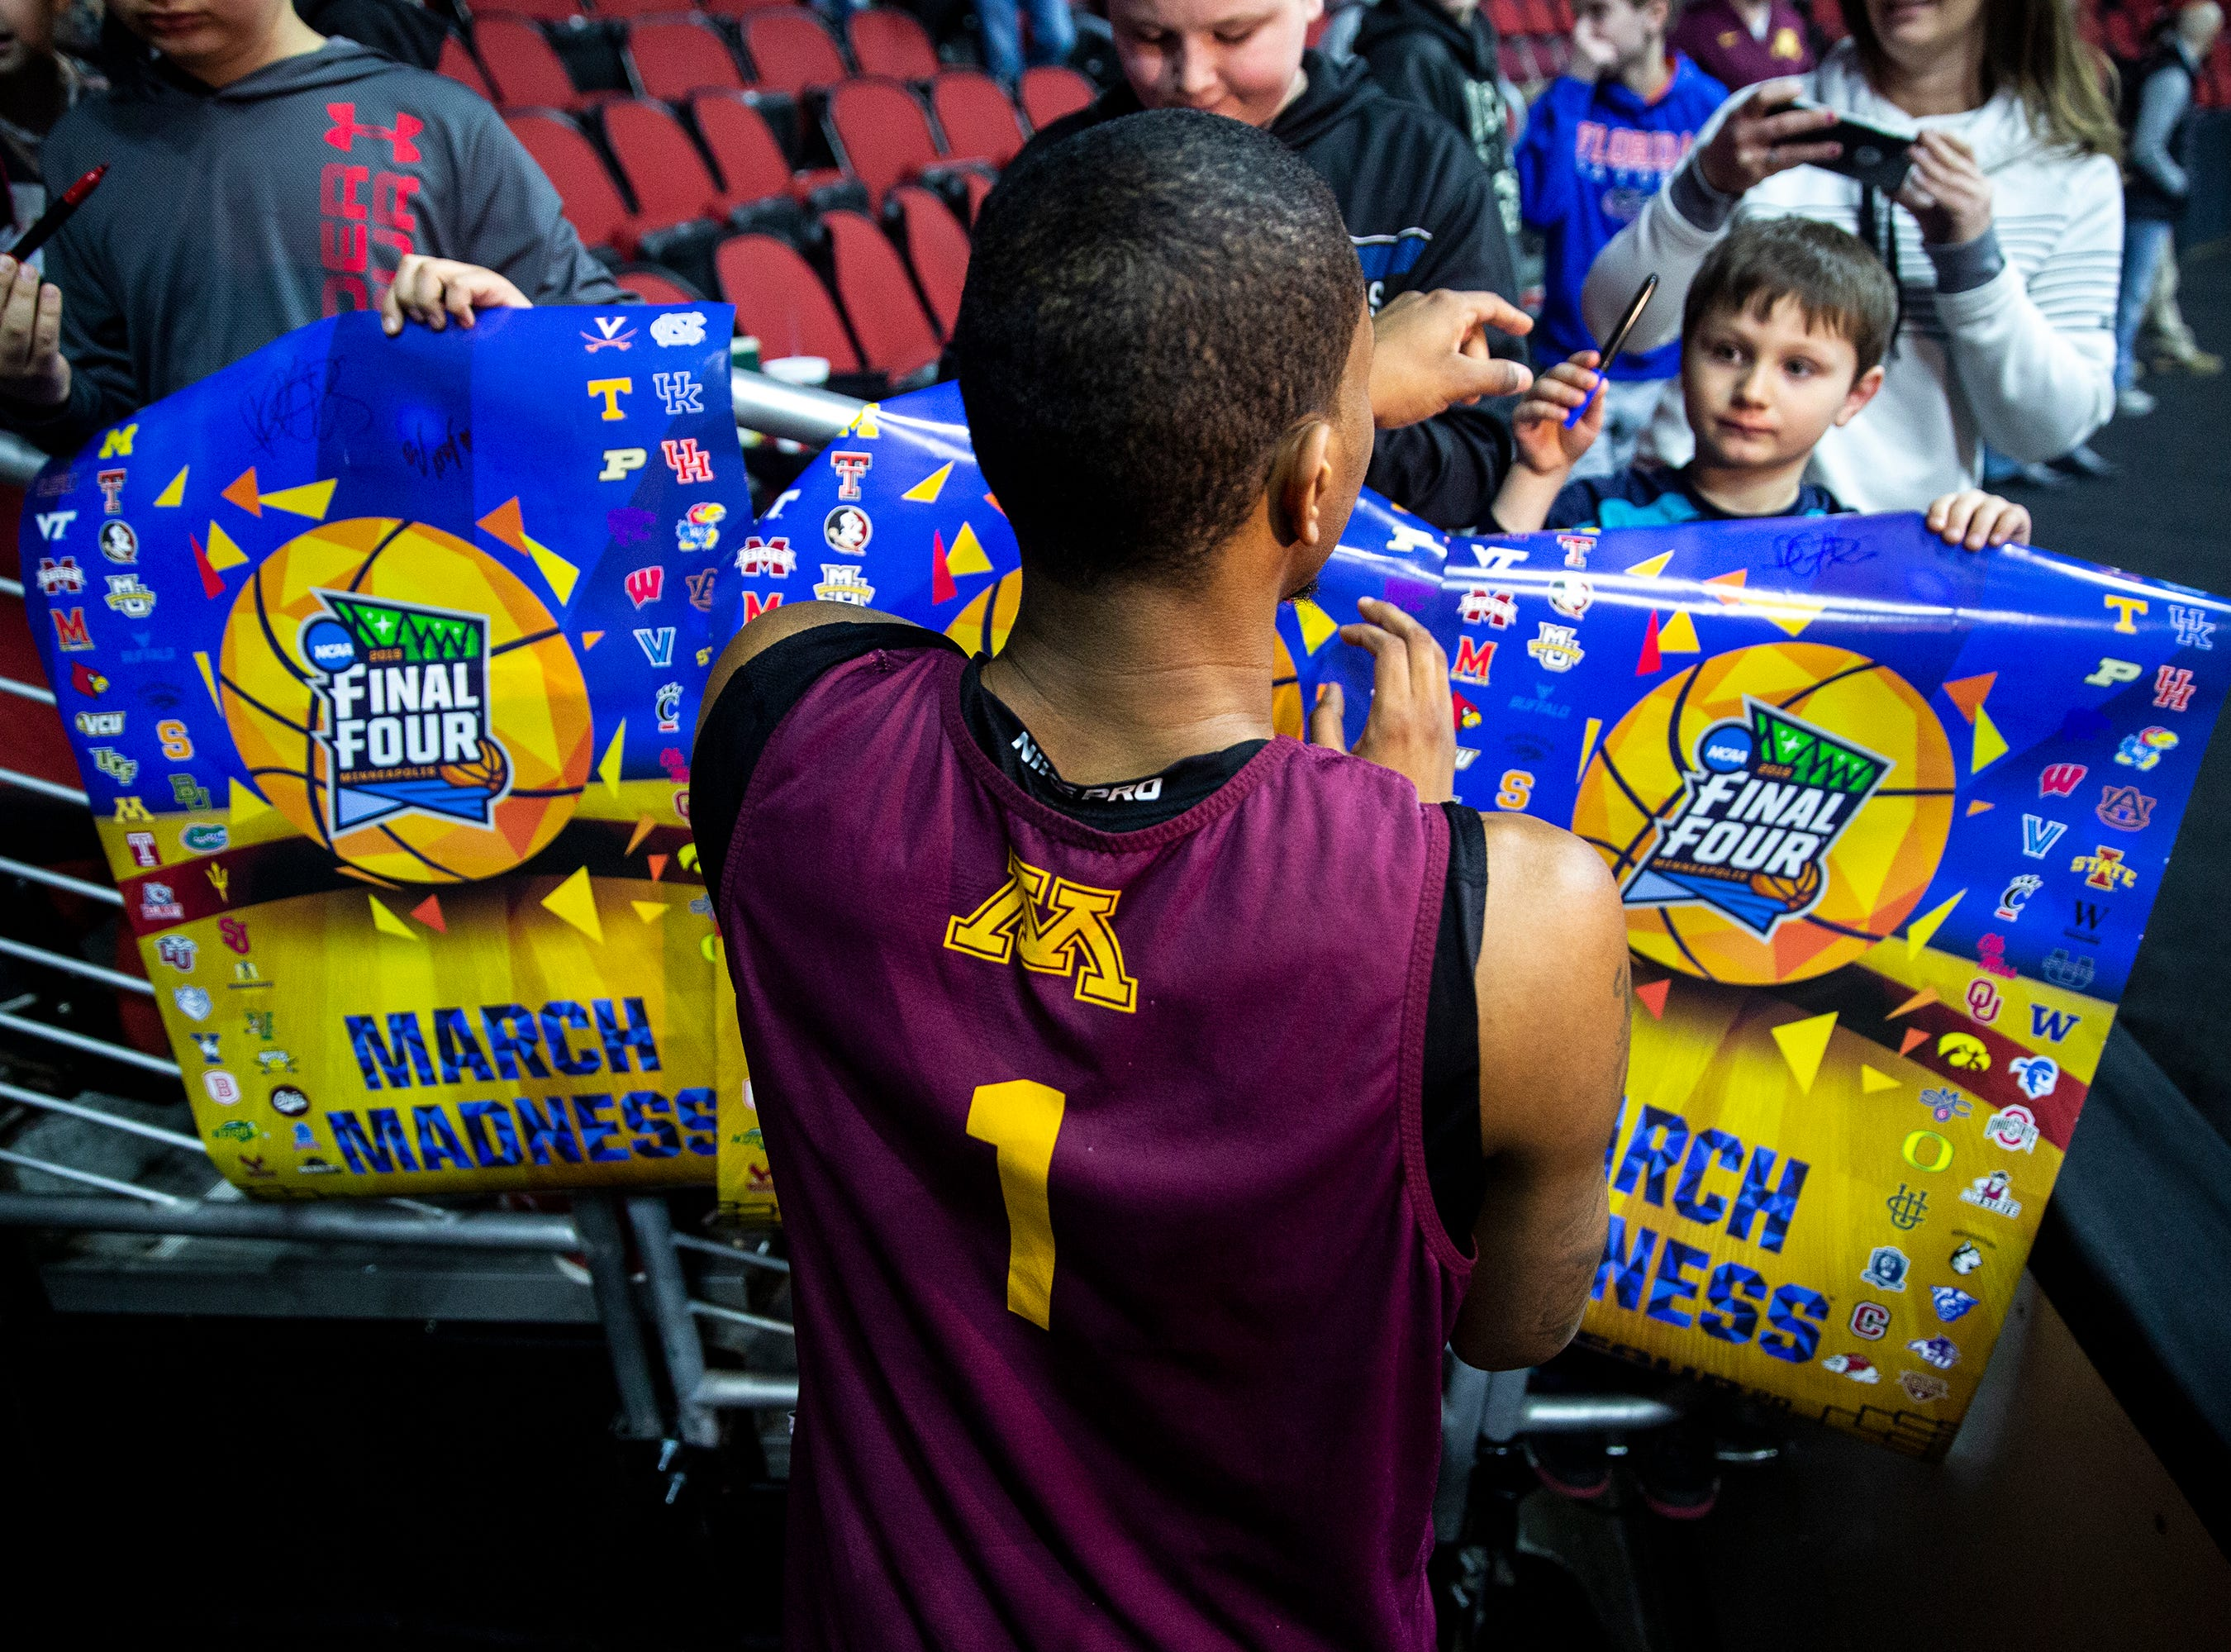 Minnesota's Dupree McBrayer signs autographs after Minnesota's open practice before the first round of the NCAA Men's Basketball Tournament on Wednesday, March 20, 2019, at Wells Fargo Arena in Des Moines, Iowa. Minnesota will face Louisville in the first round on Thursday.